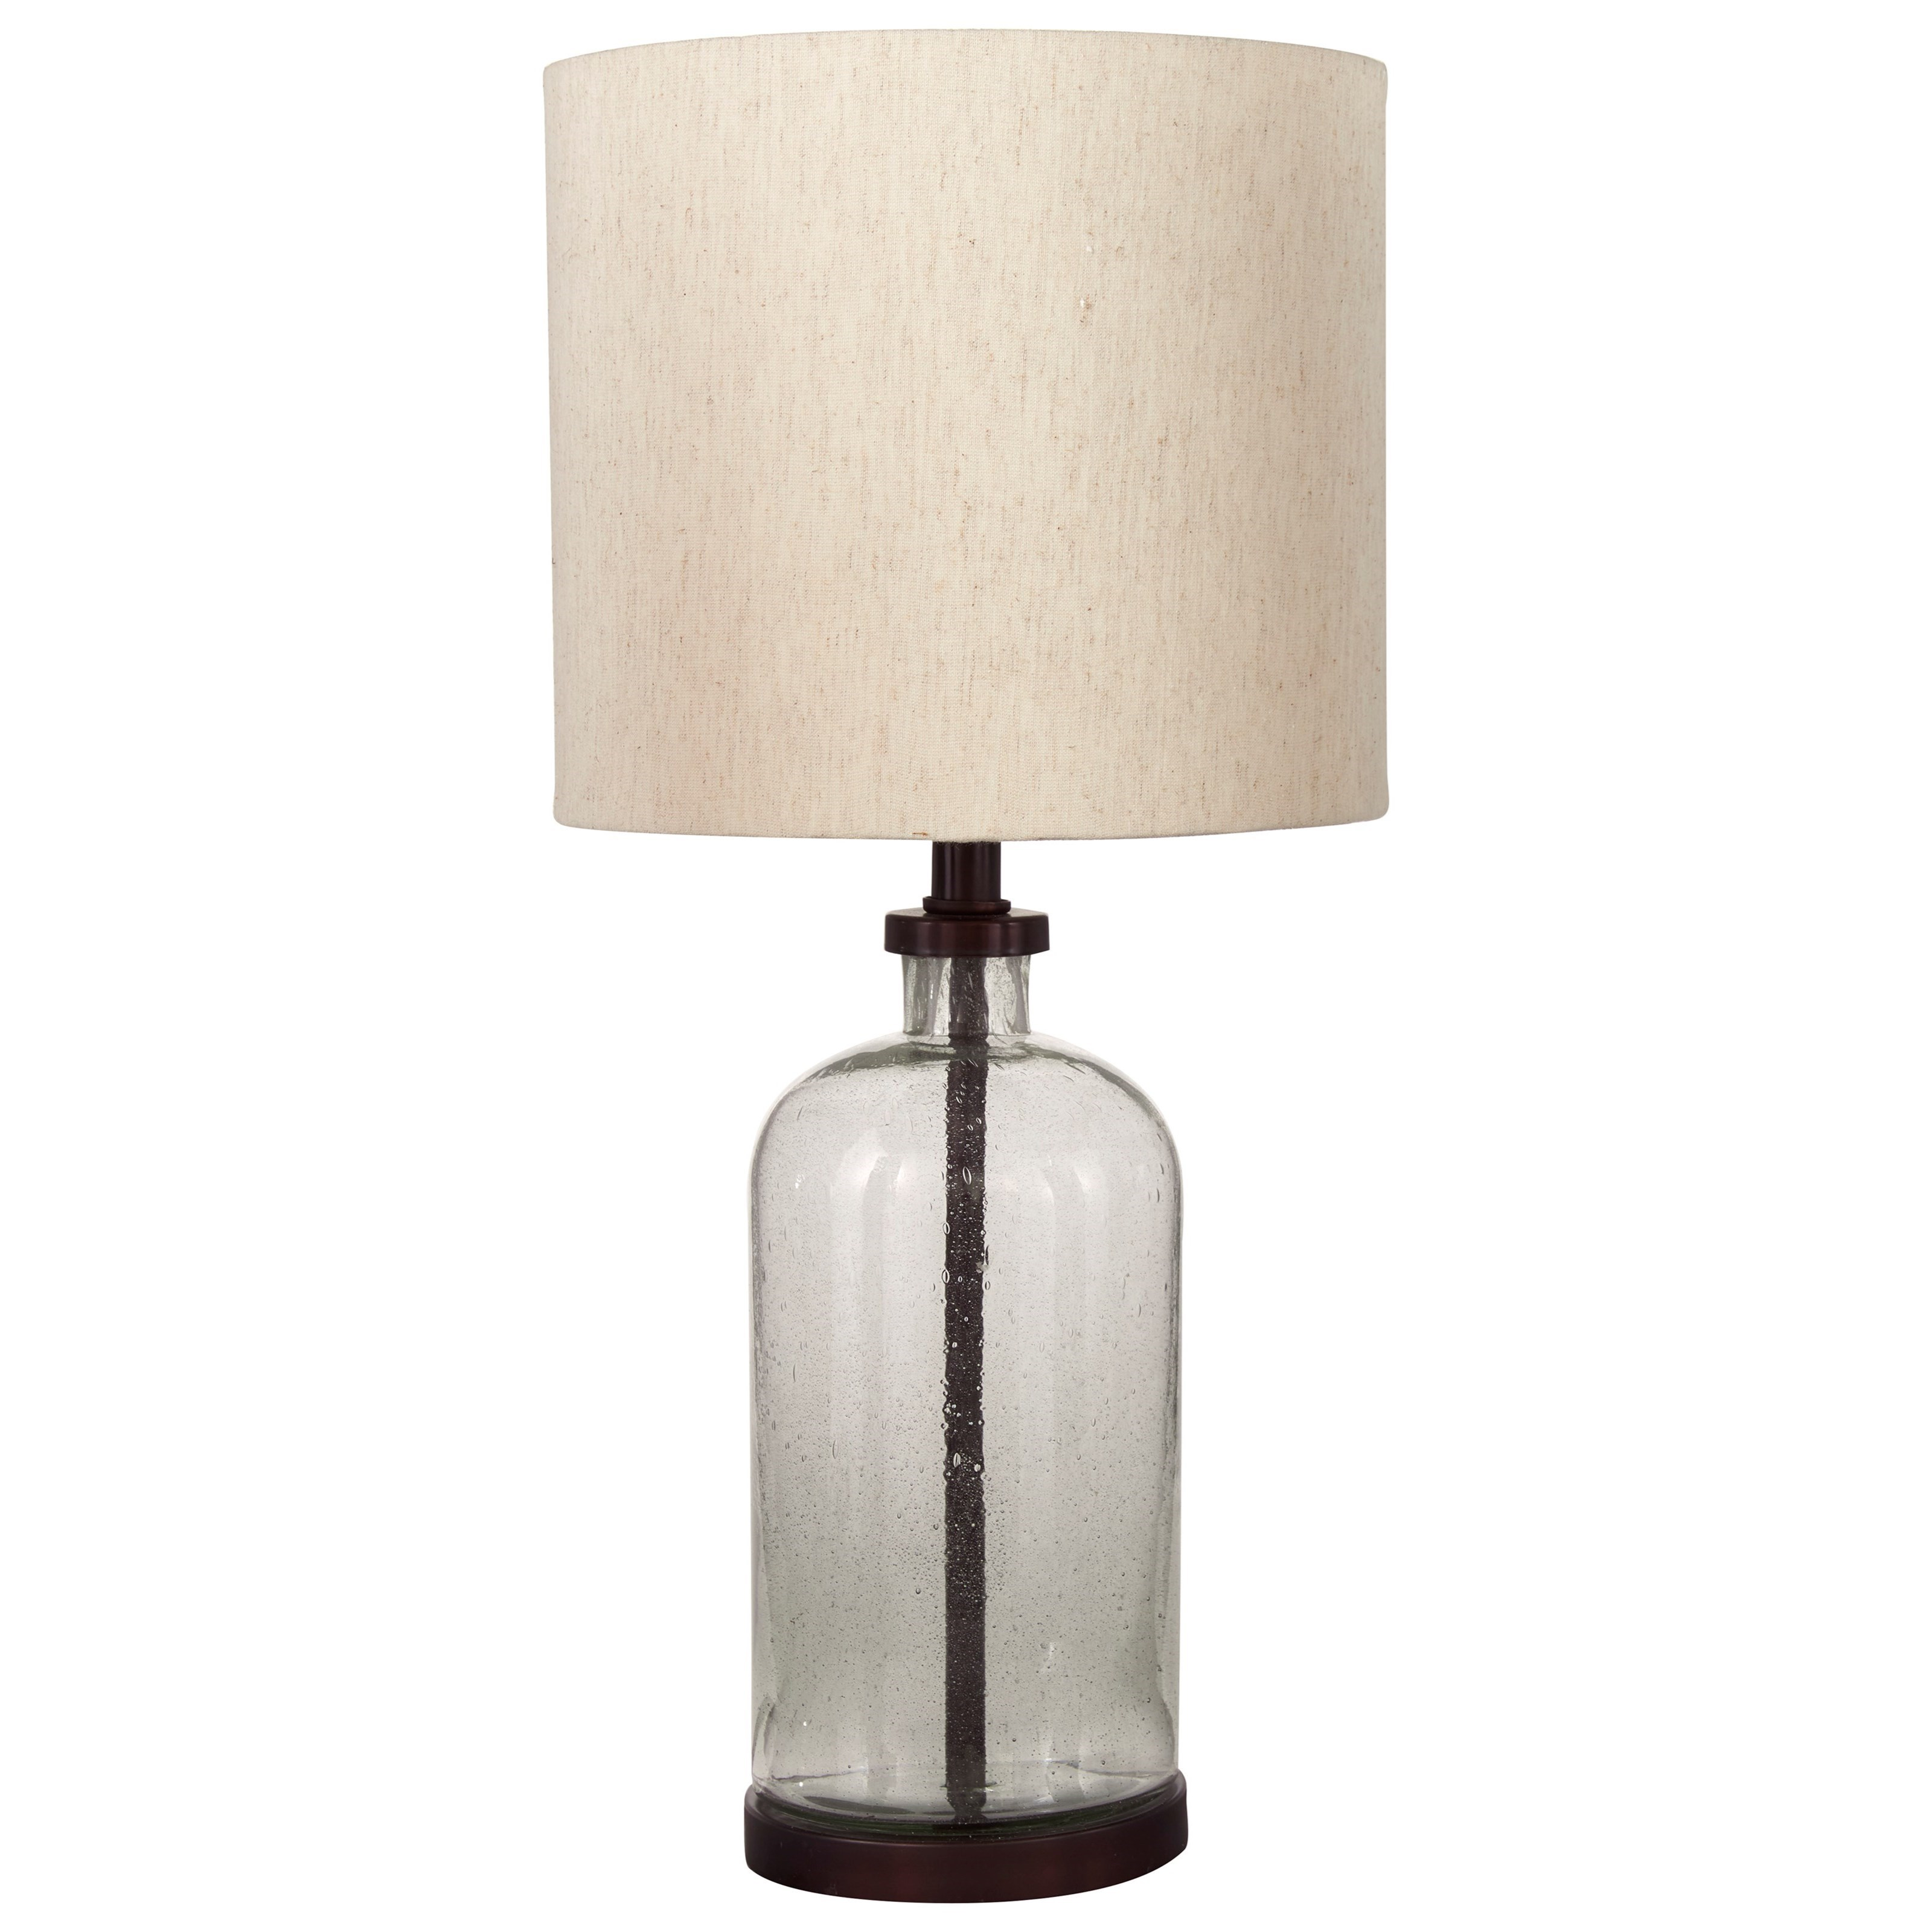 Lamps - Casual Bandile Clear/Bronze Finish Table Lamp by Signature Design by Ashley at Houston's Yuma Furniture